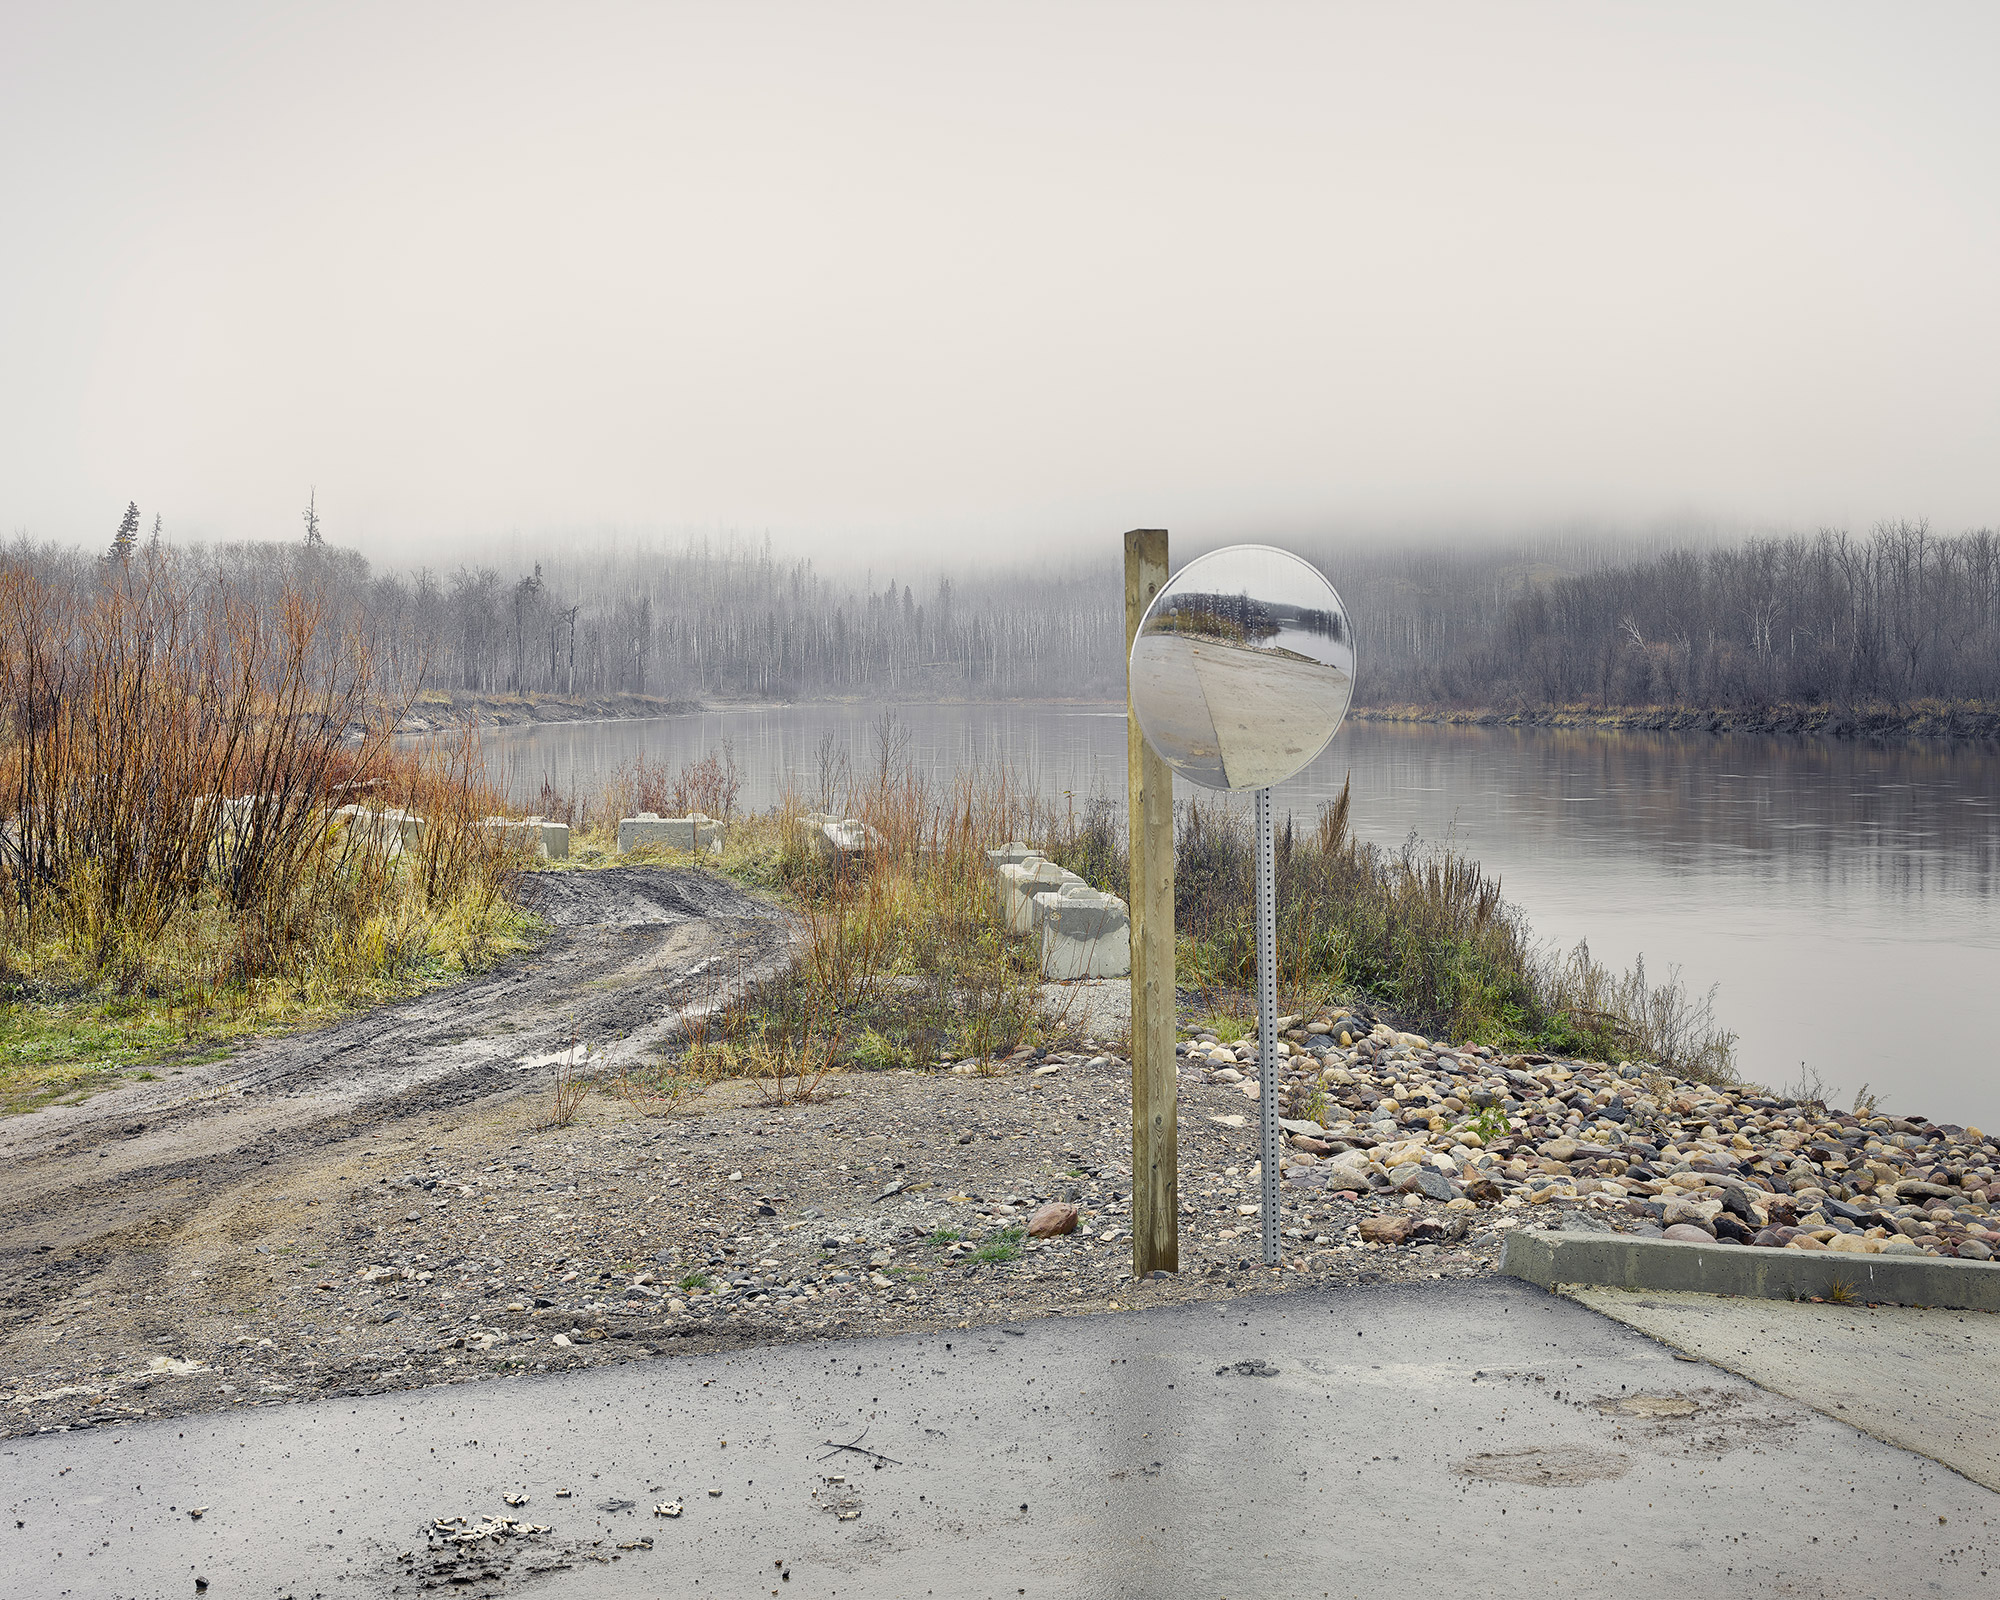 Clearwater River Boat Ramp,  Fort McMurray, Canada November, 201